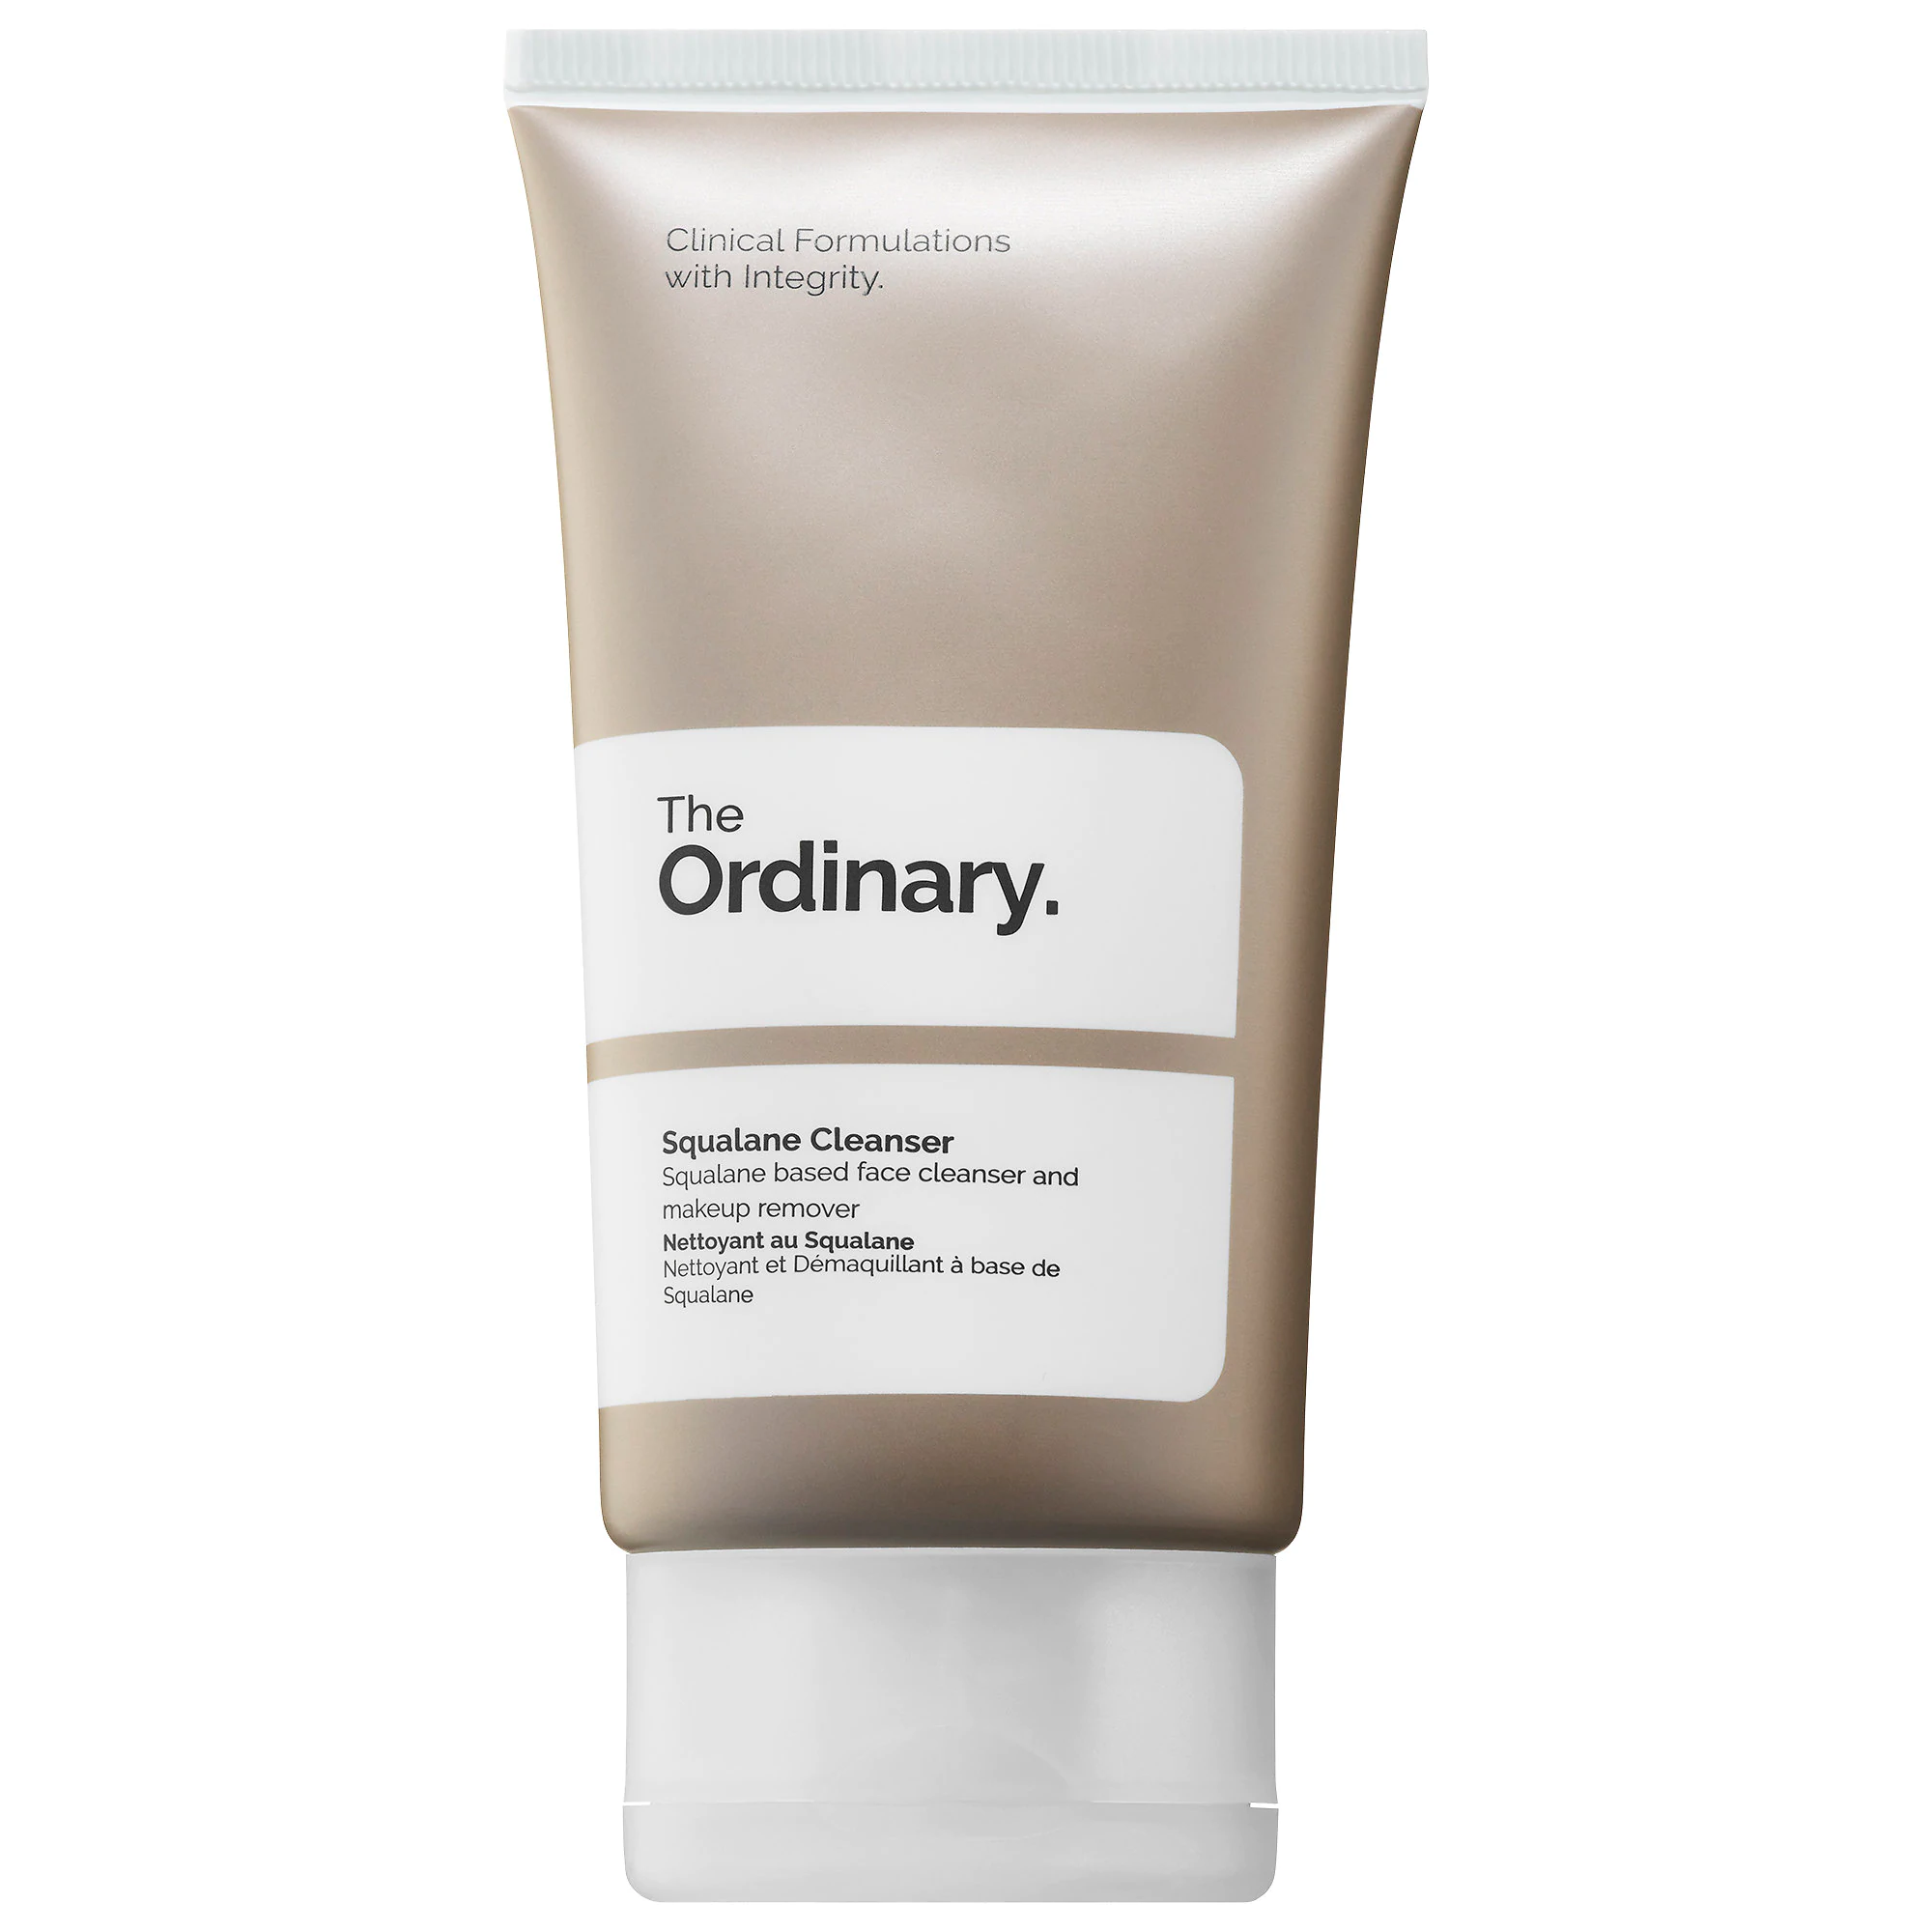 The Ordinary-Squalane Cleanser